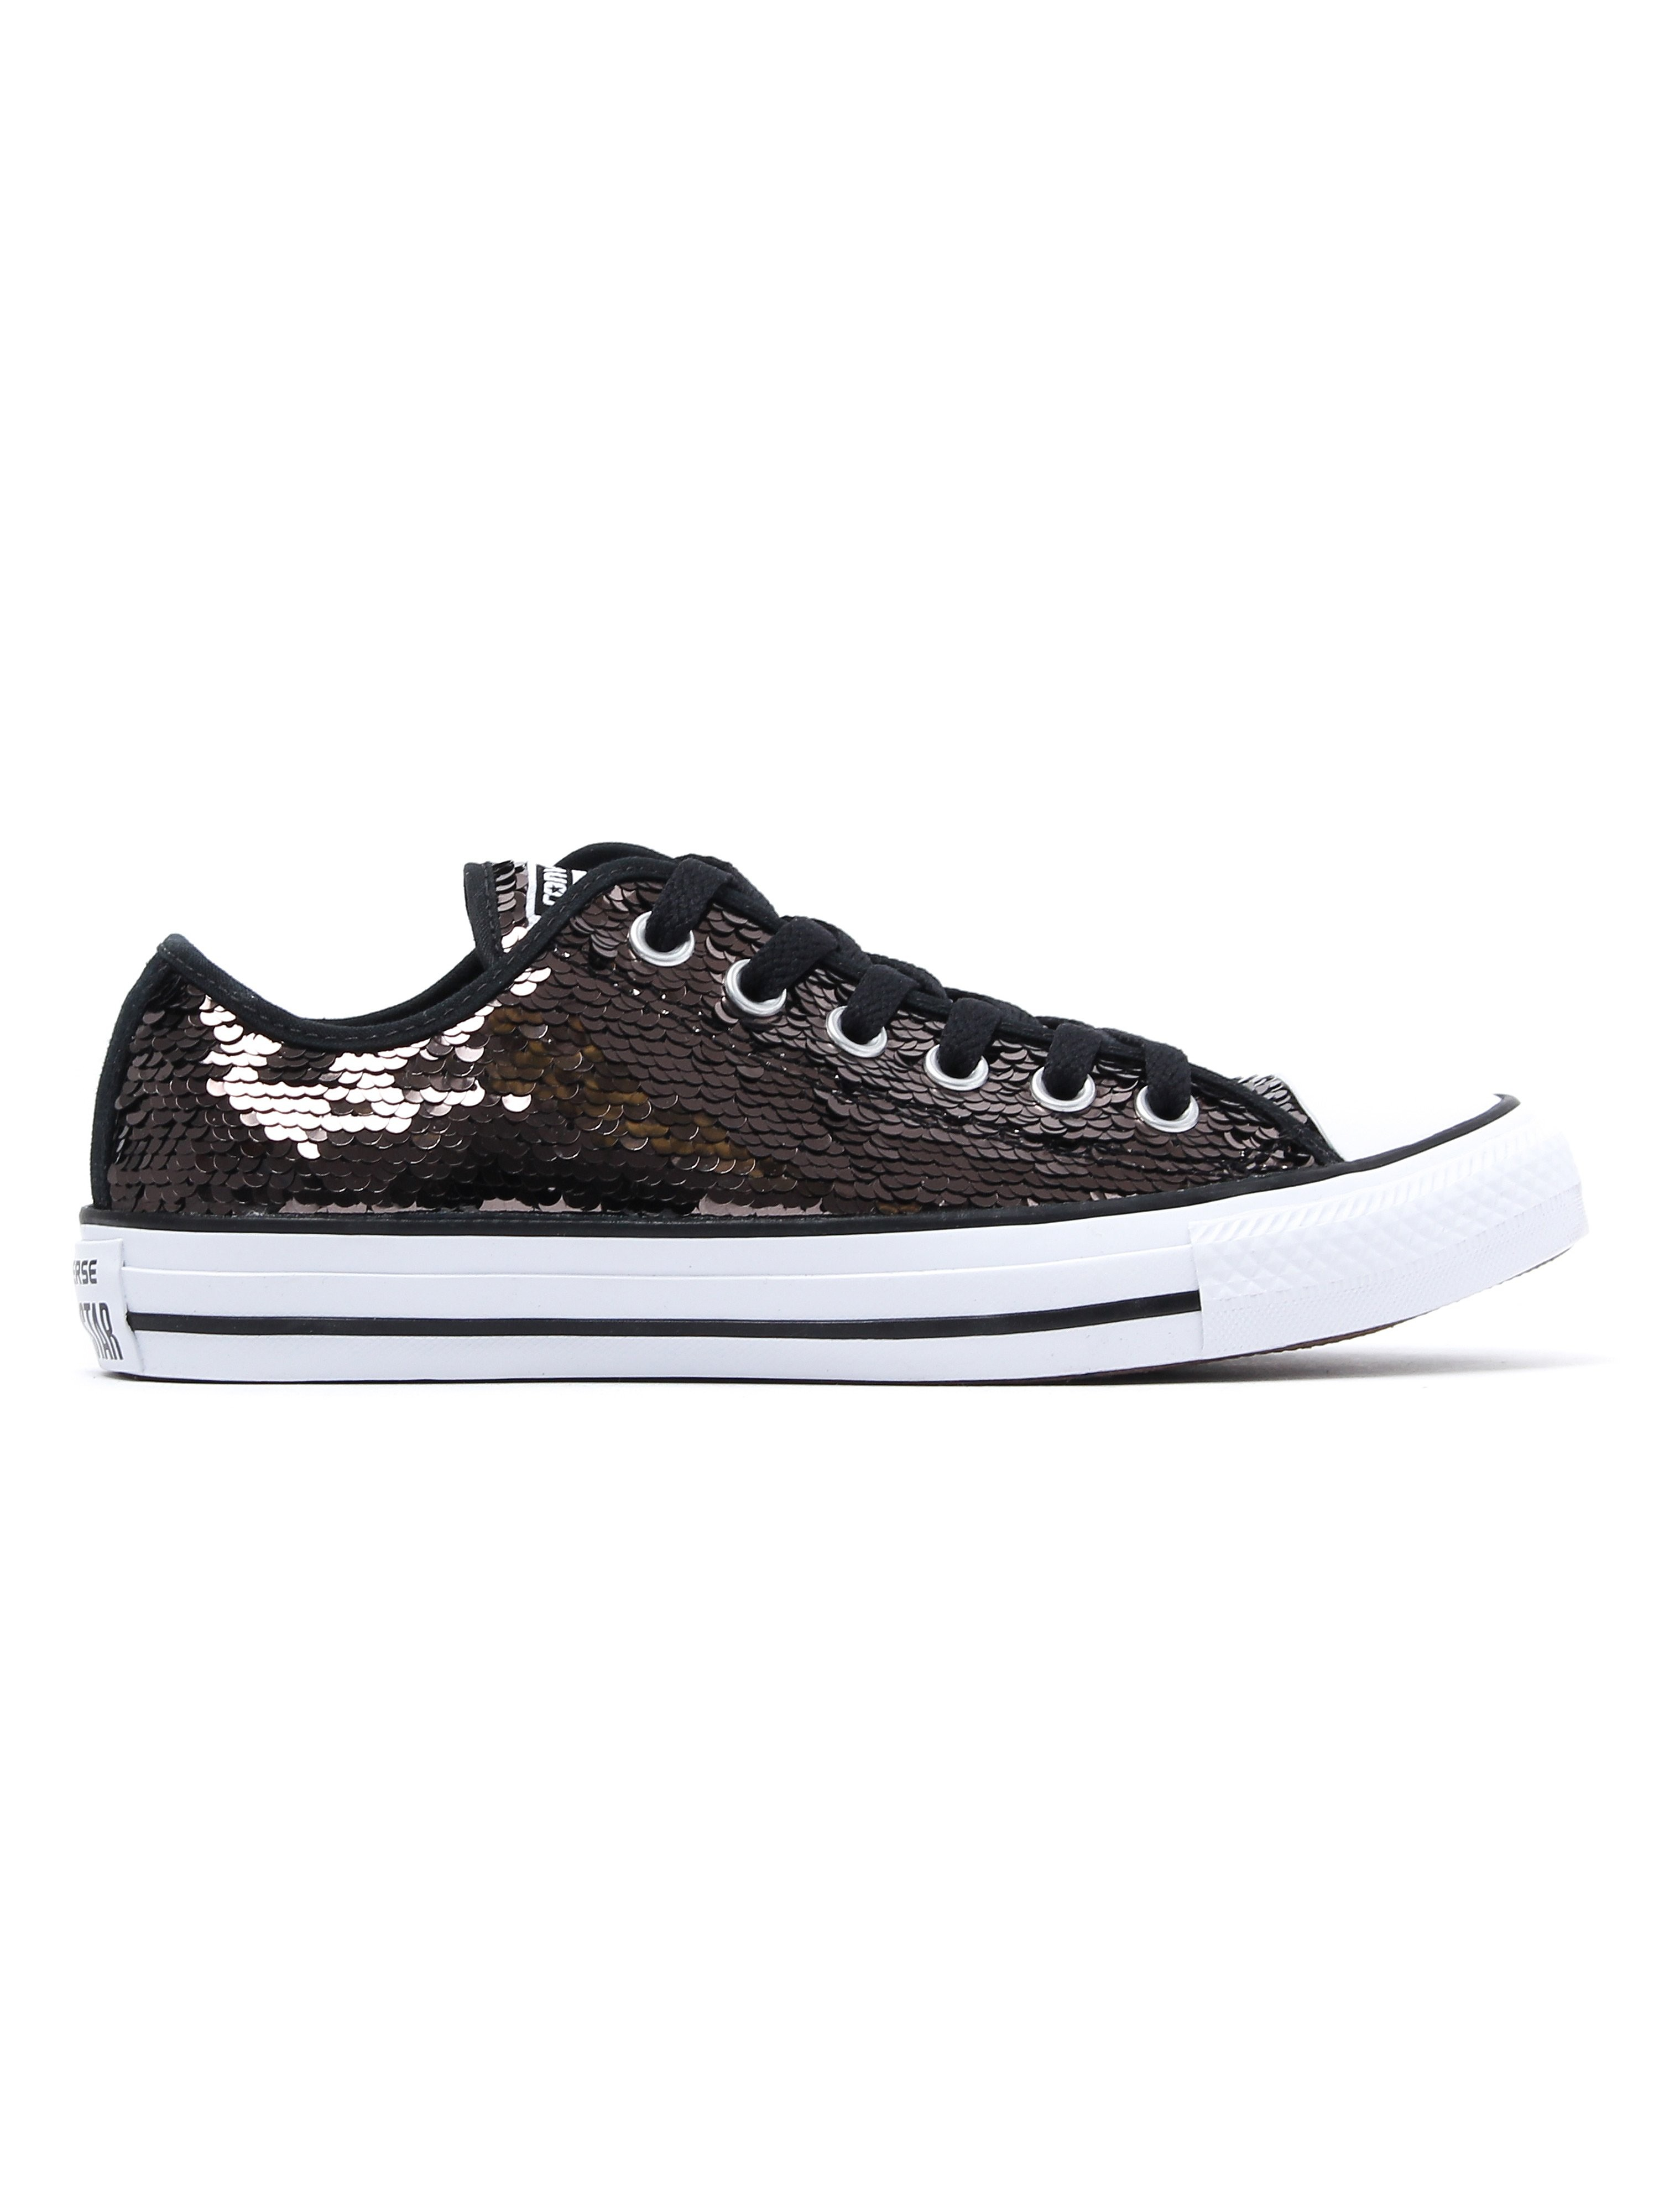 Converse Women's Chuck Taylor All Star OX Trainers - Gunmetal Sequin